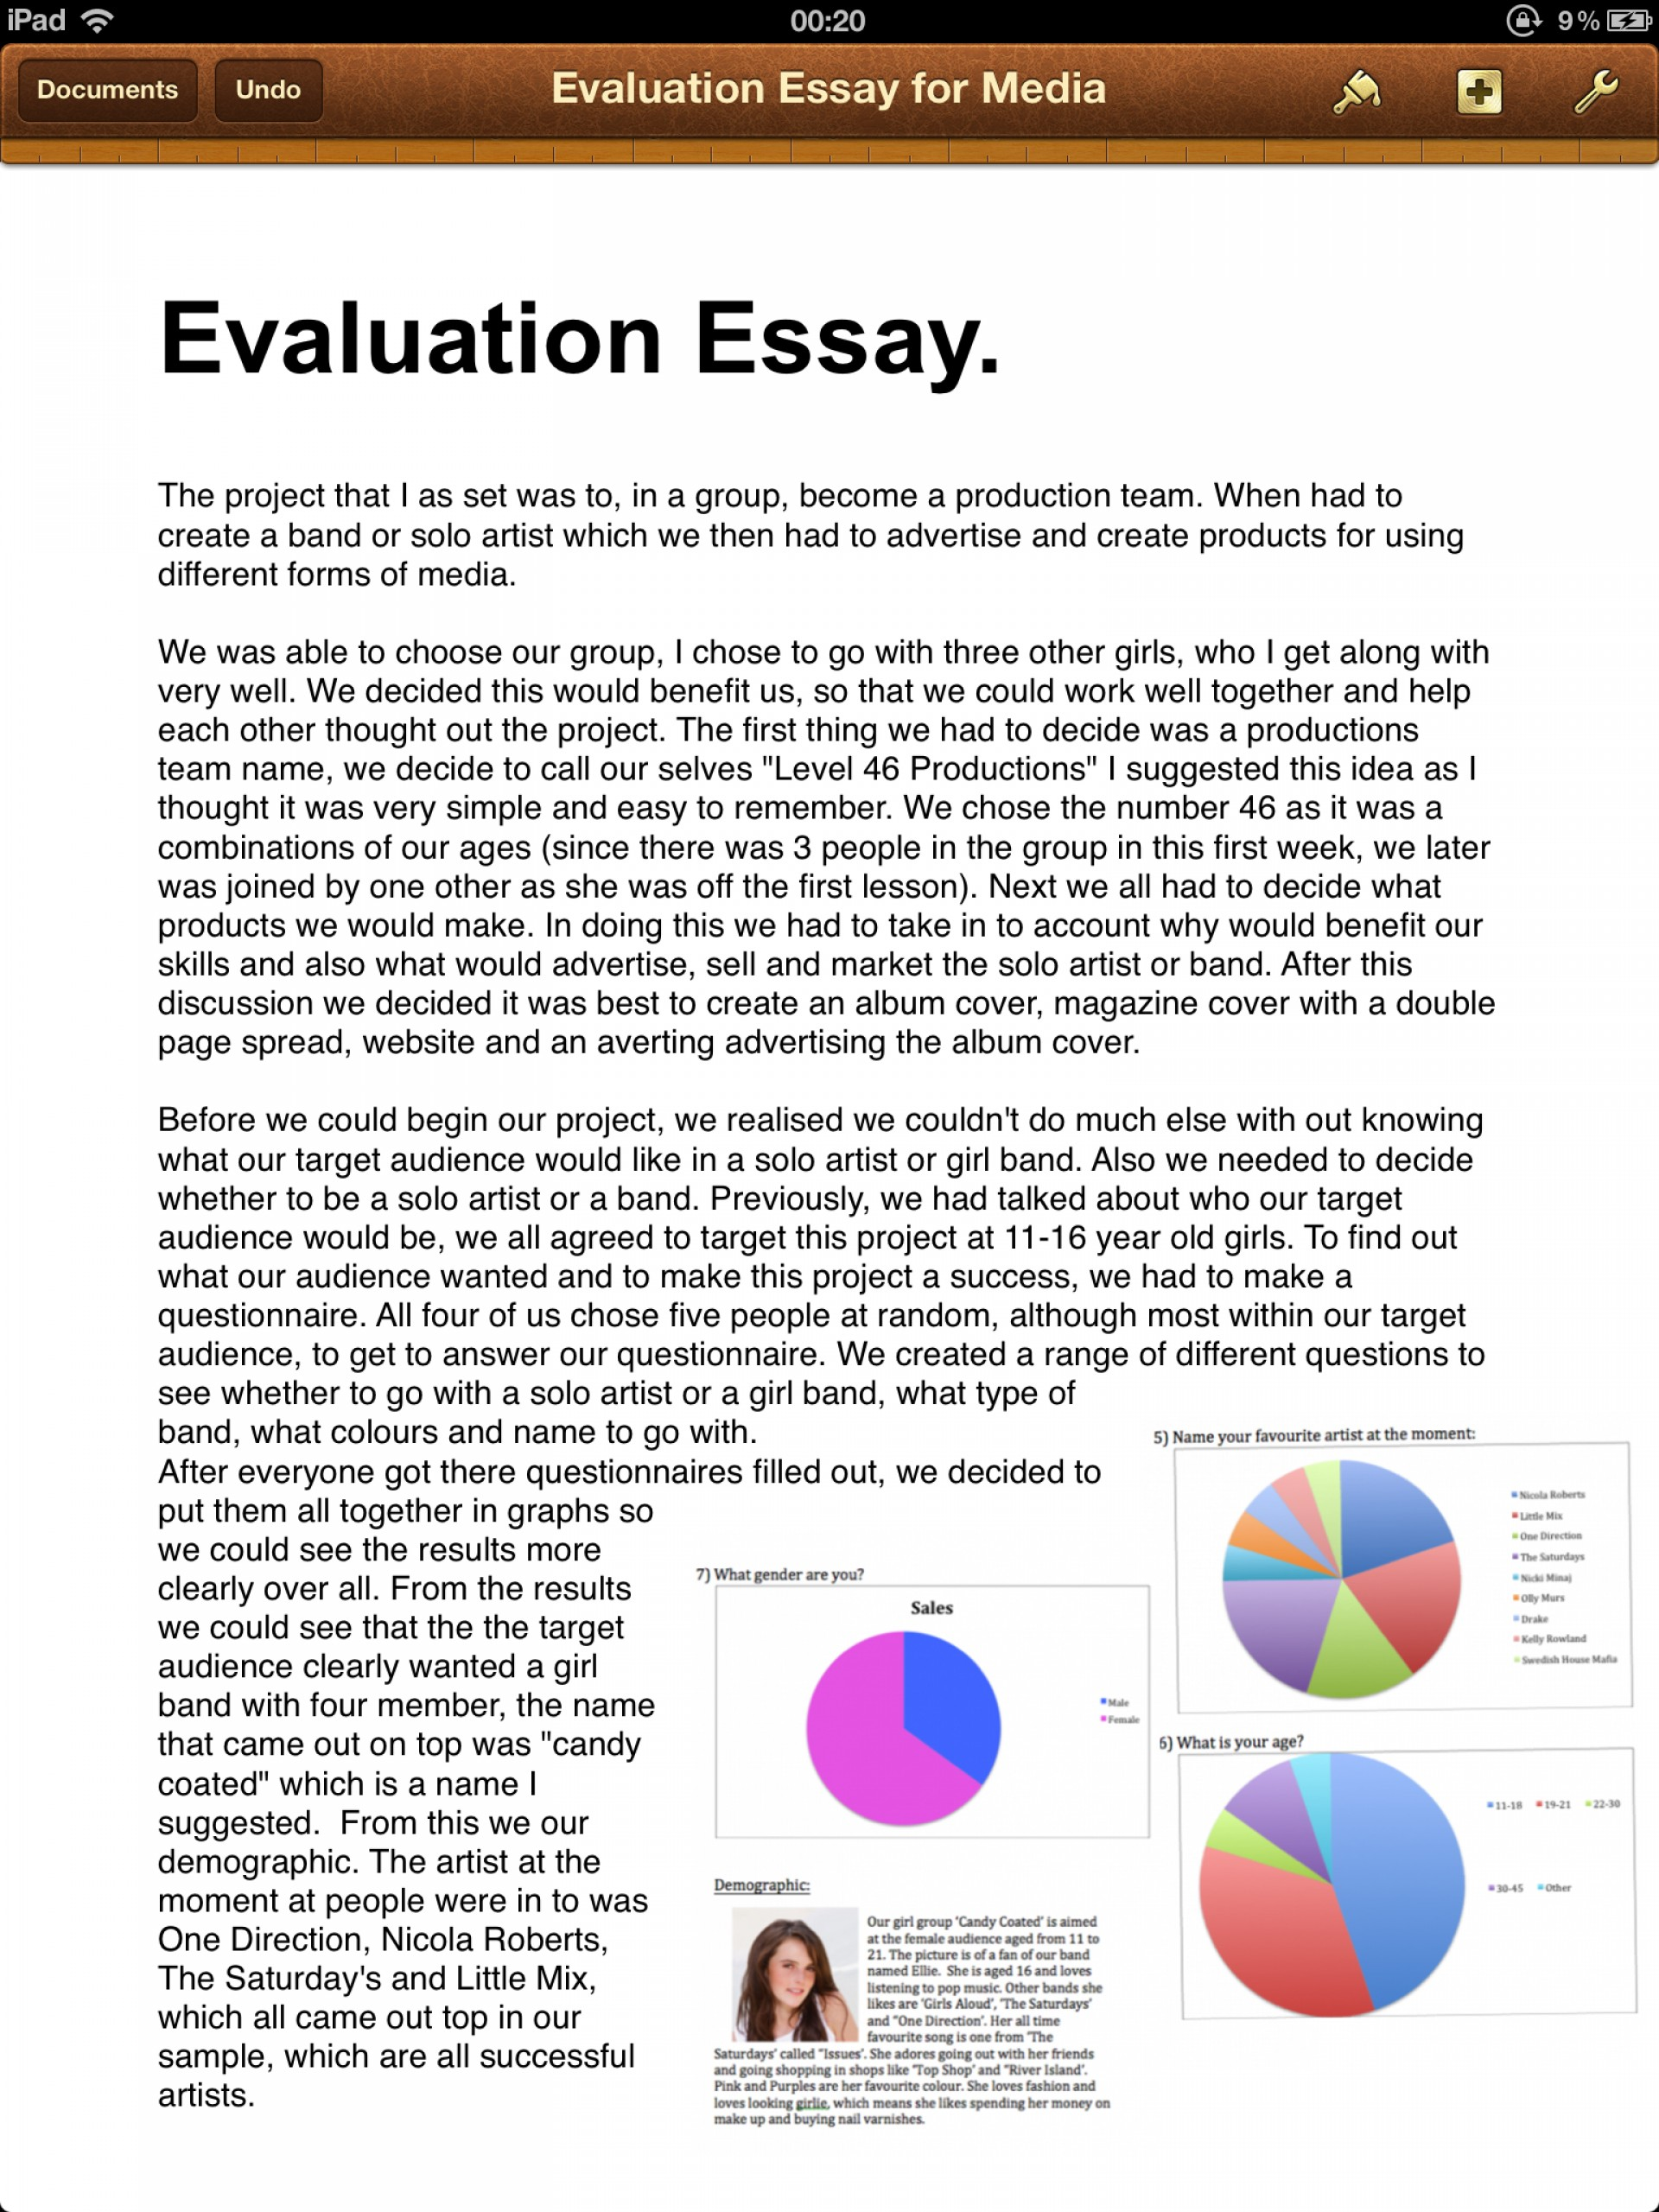 015 How To Write An Evaluation Essay Pg Outstanding A Self Sample Critical Psychology On Product 1920